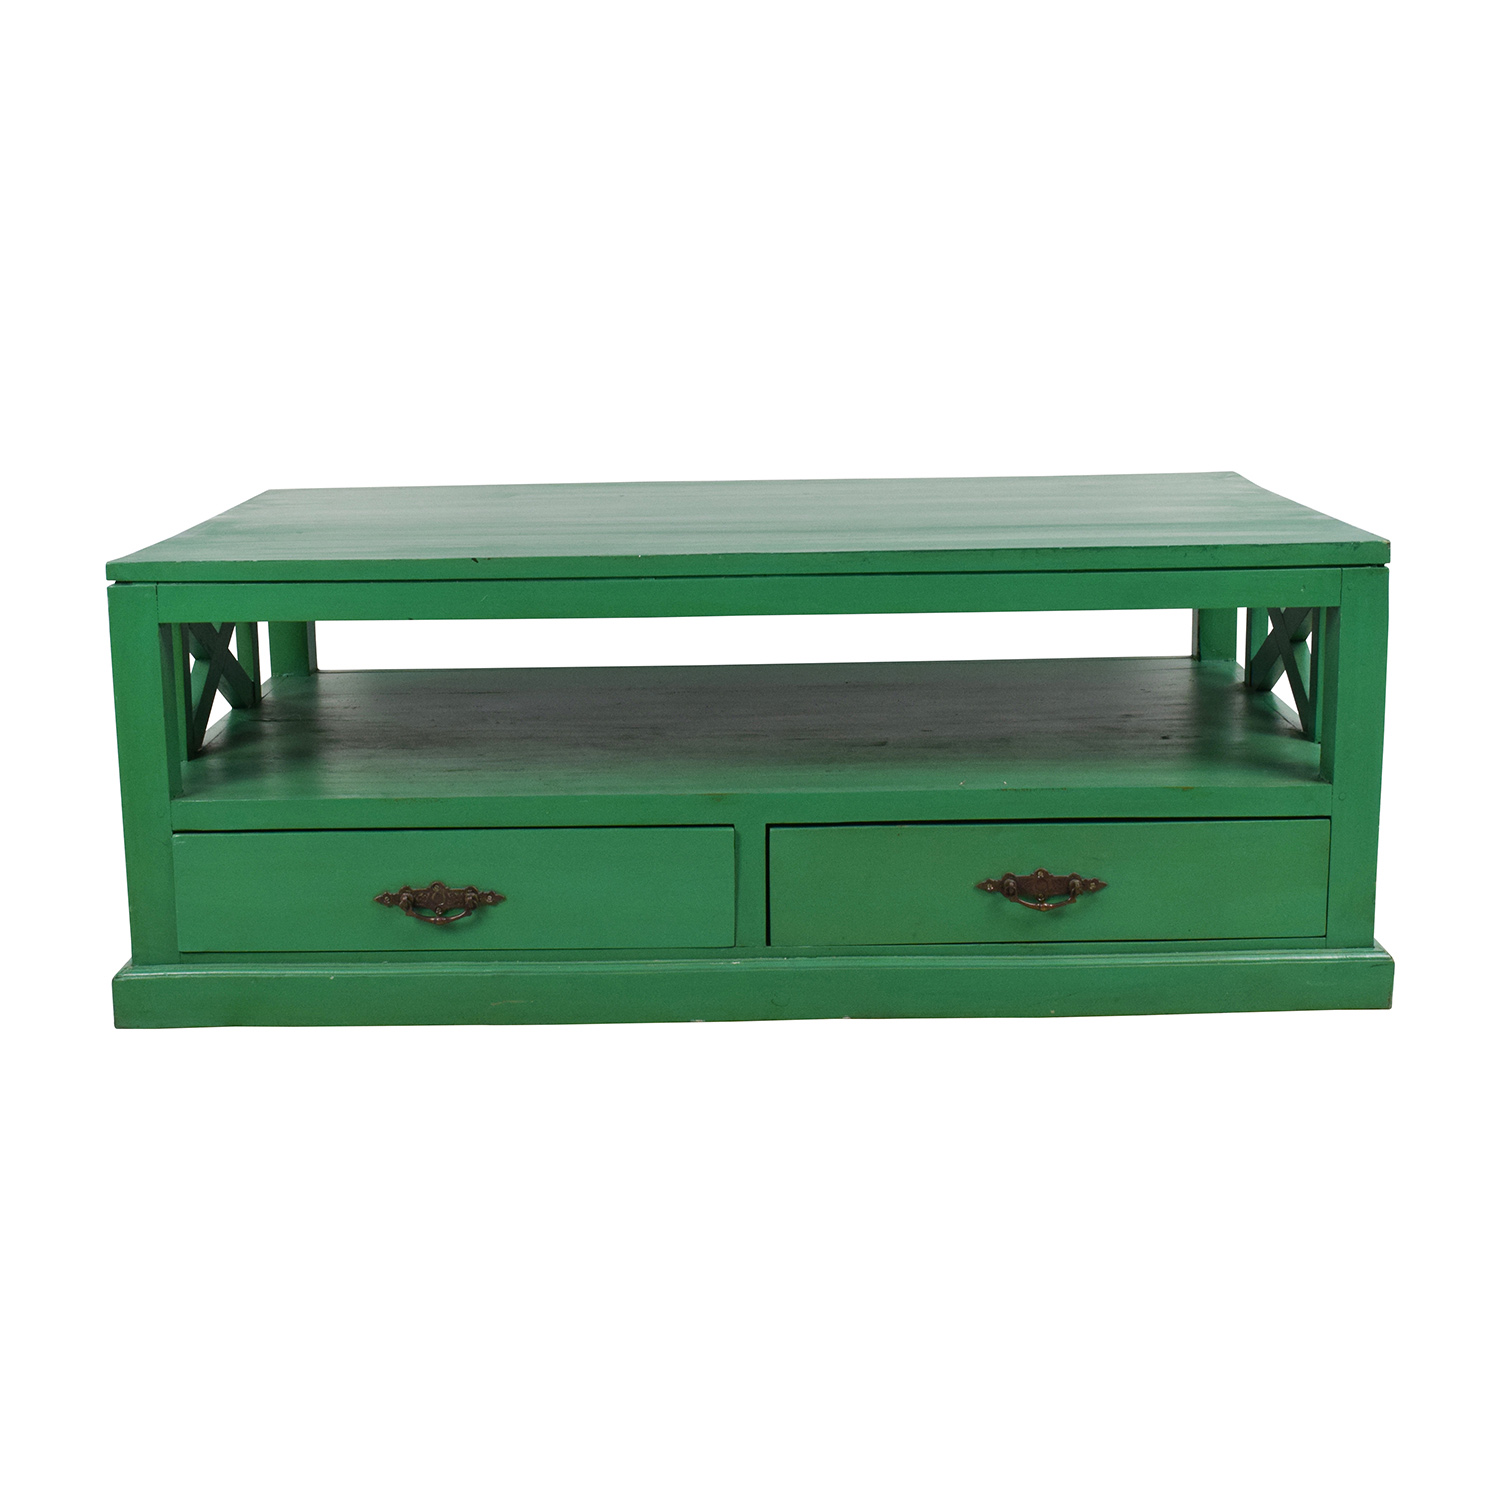 Nadeau Nadeau Handmade Green Coffee Table coupon